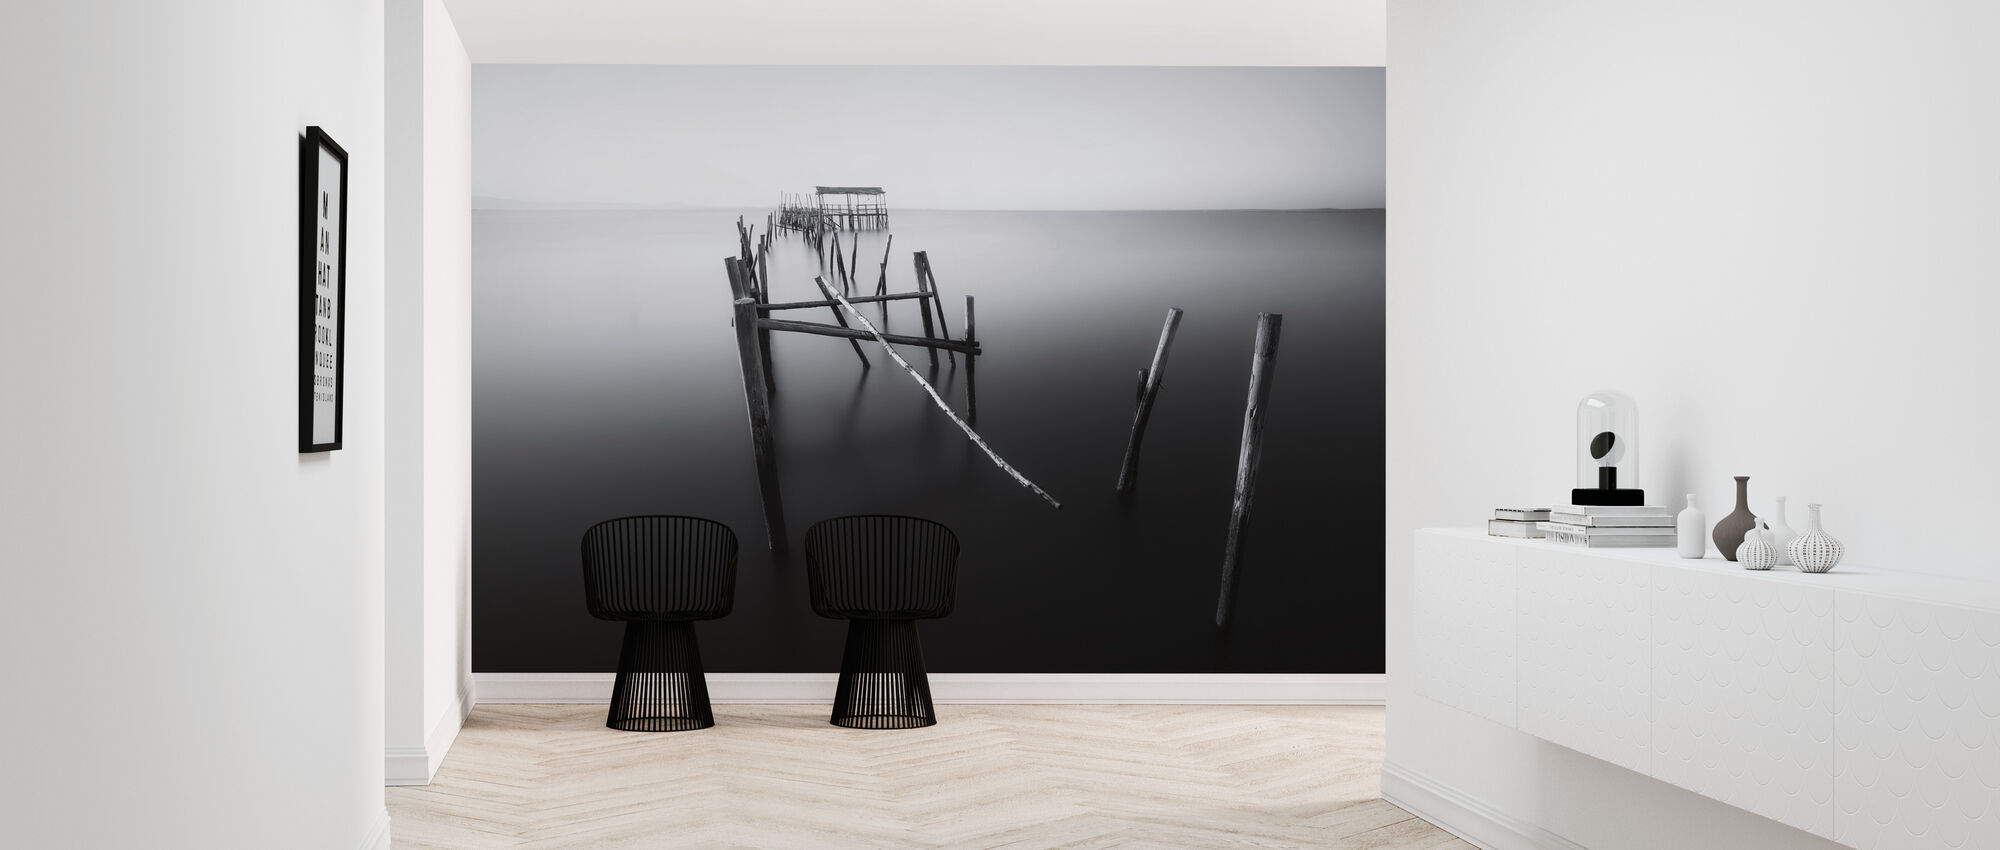 Carrasqueira, Floating Lands, black and white - Wallpaper - Hallway